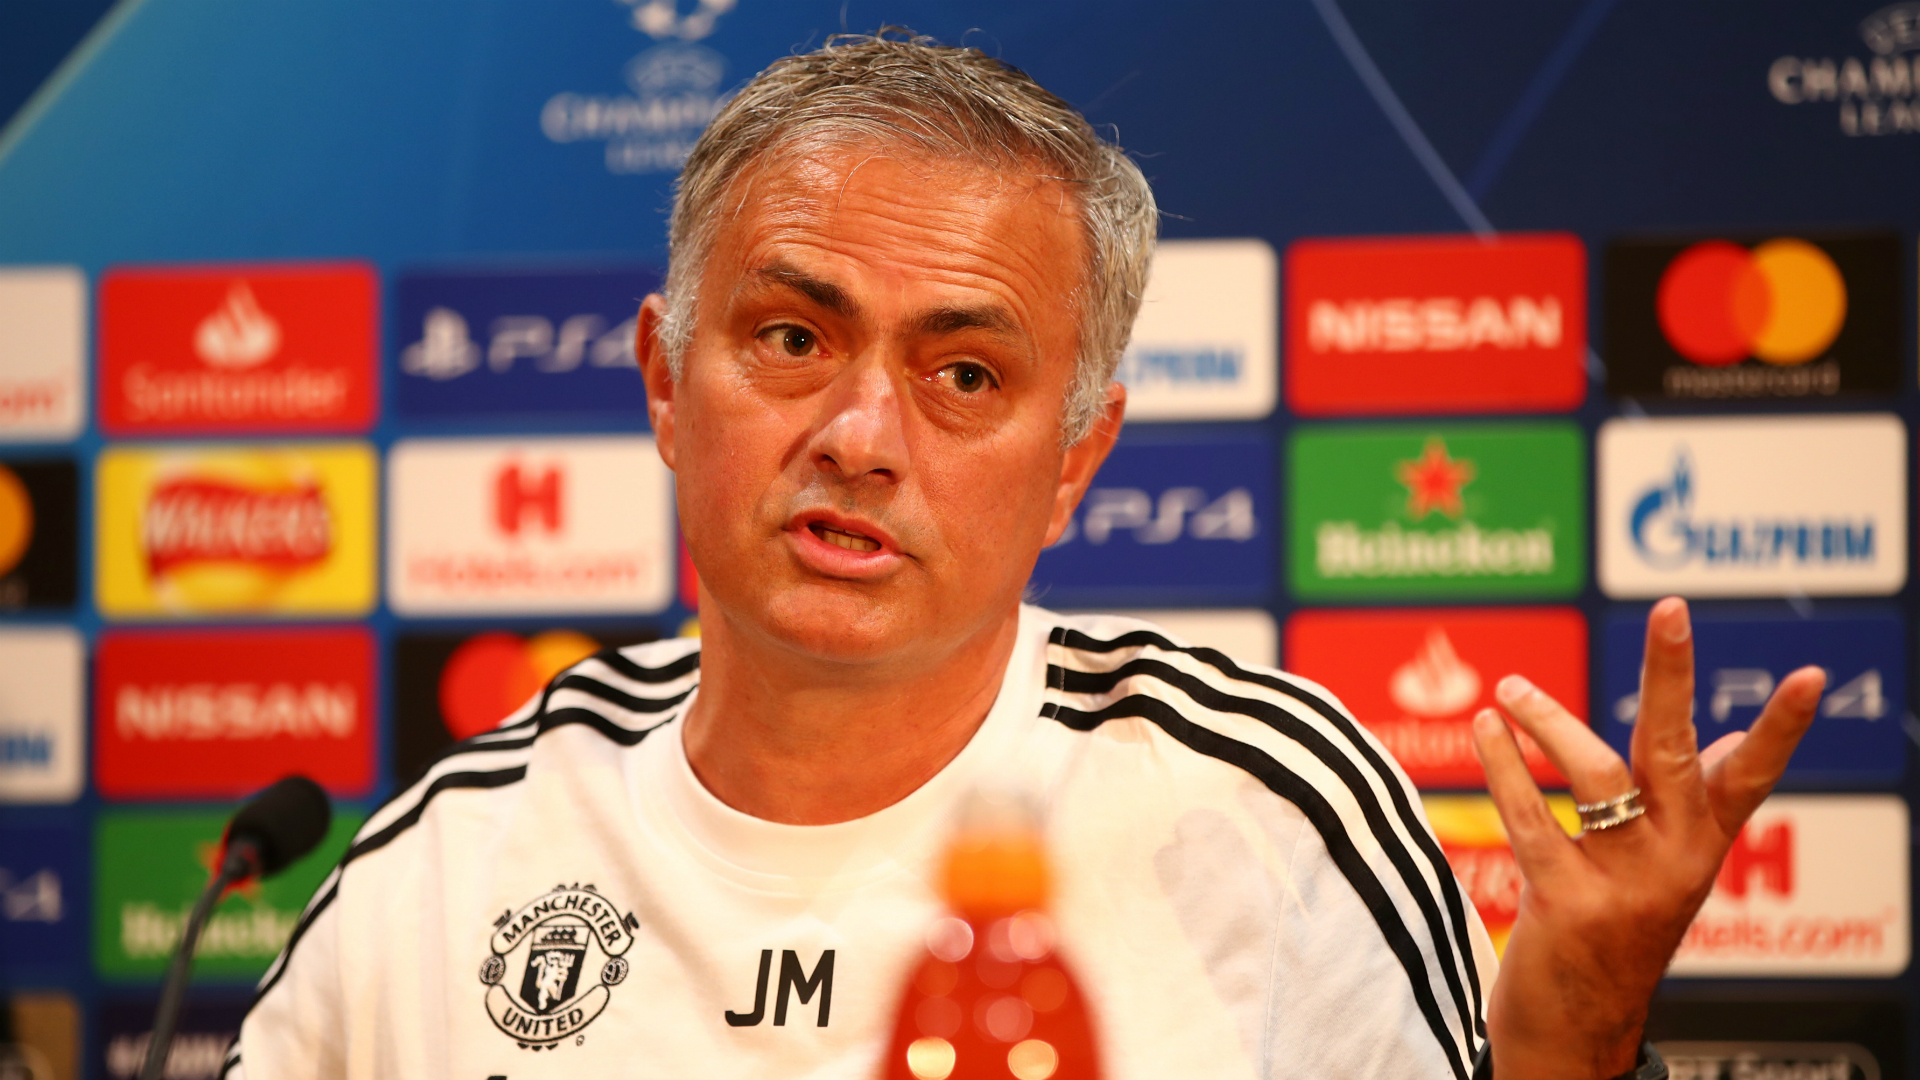 Mourinho: My job is not under threat